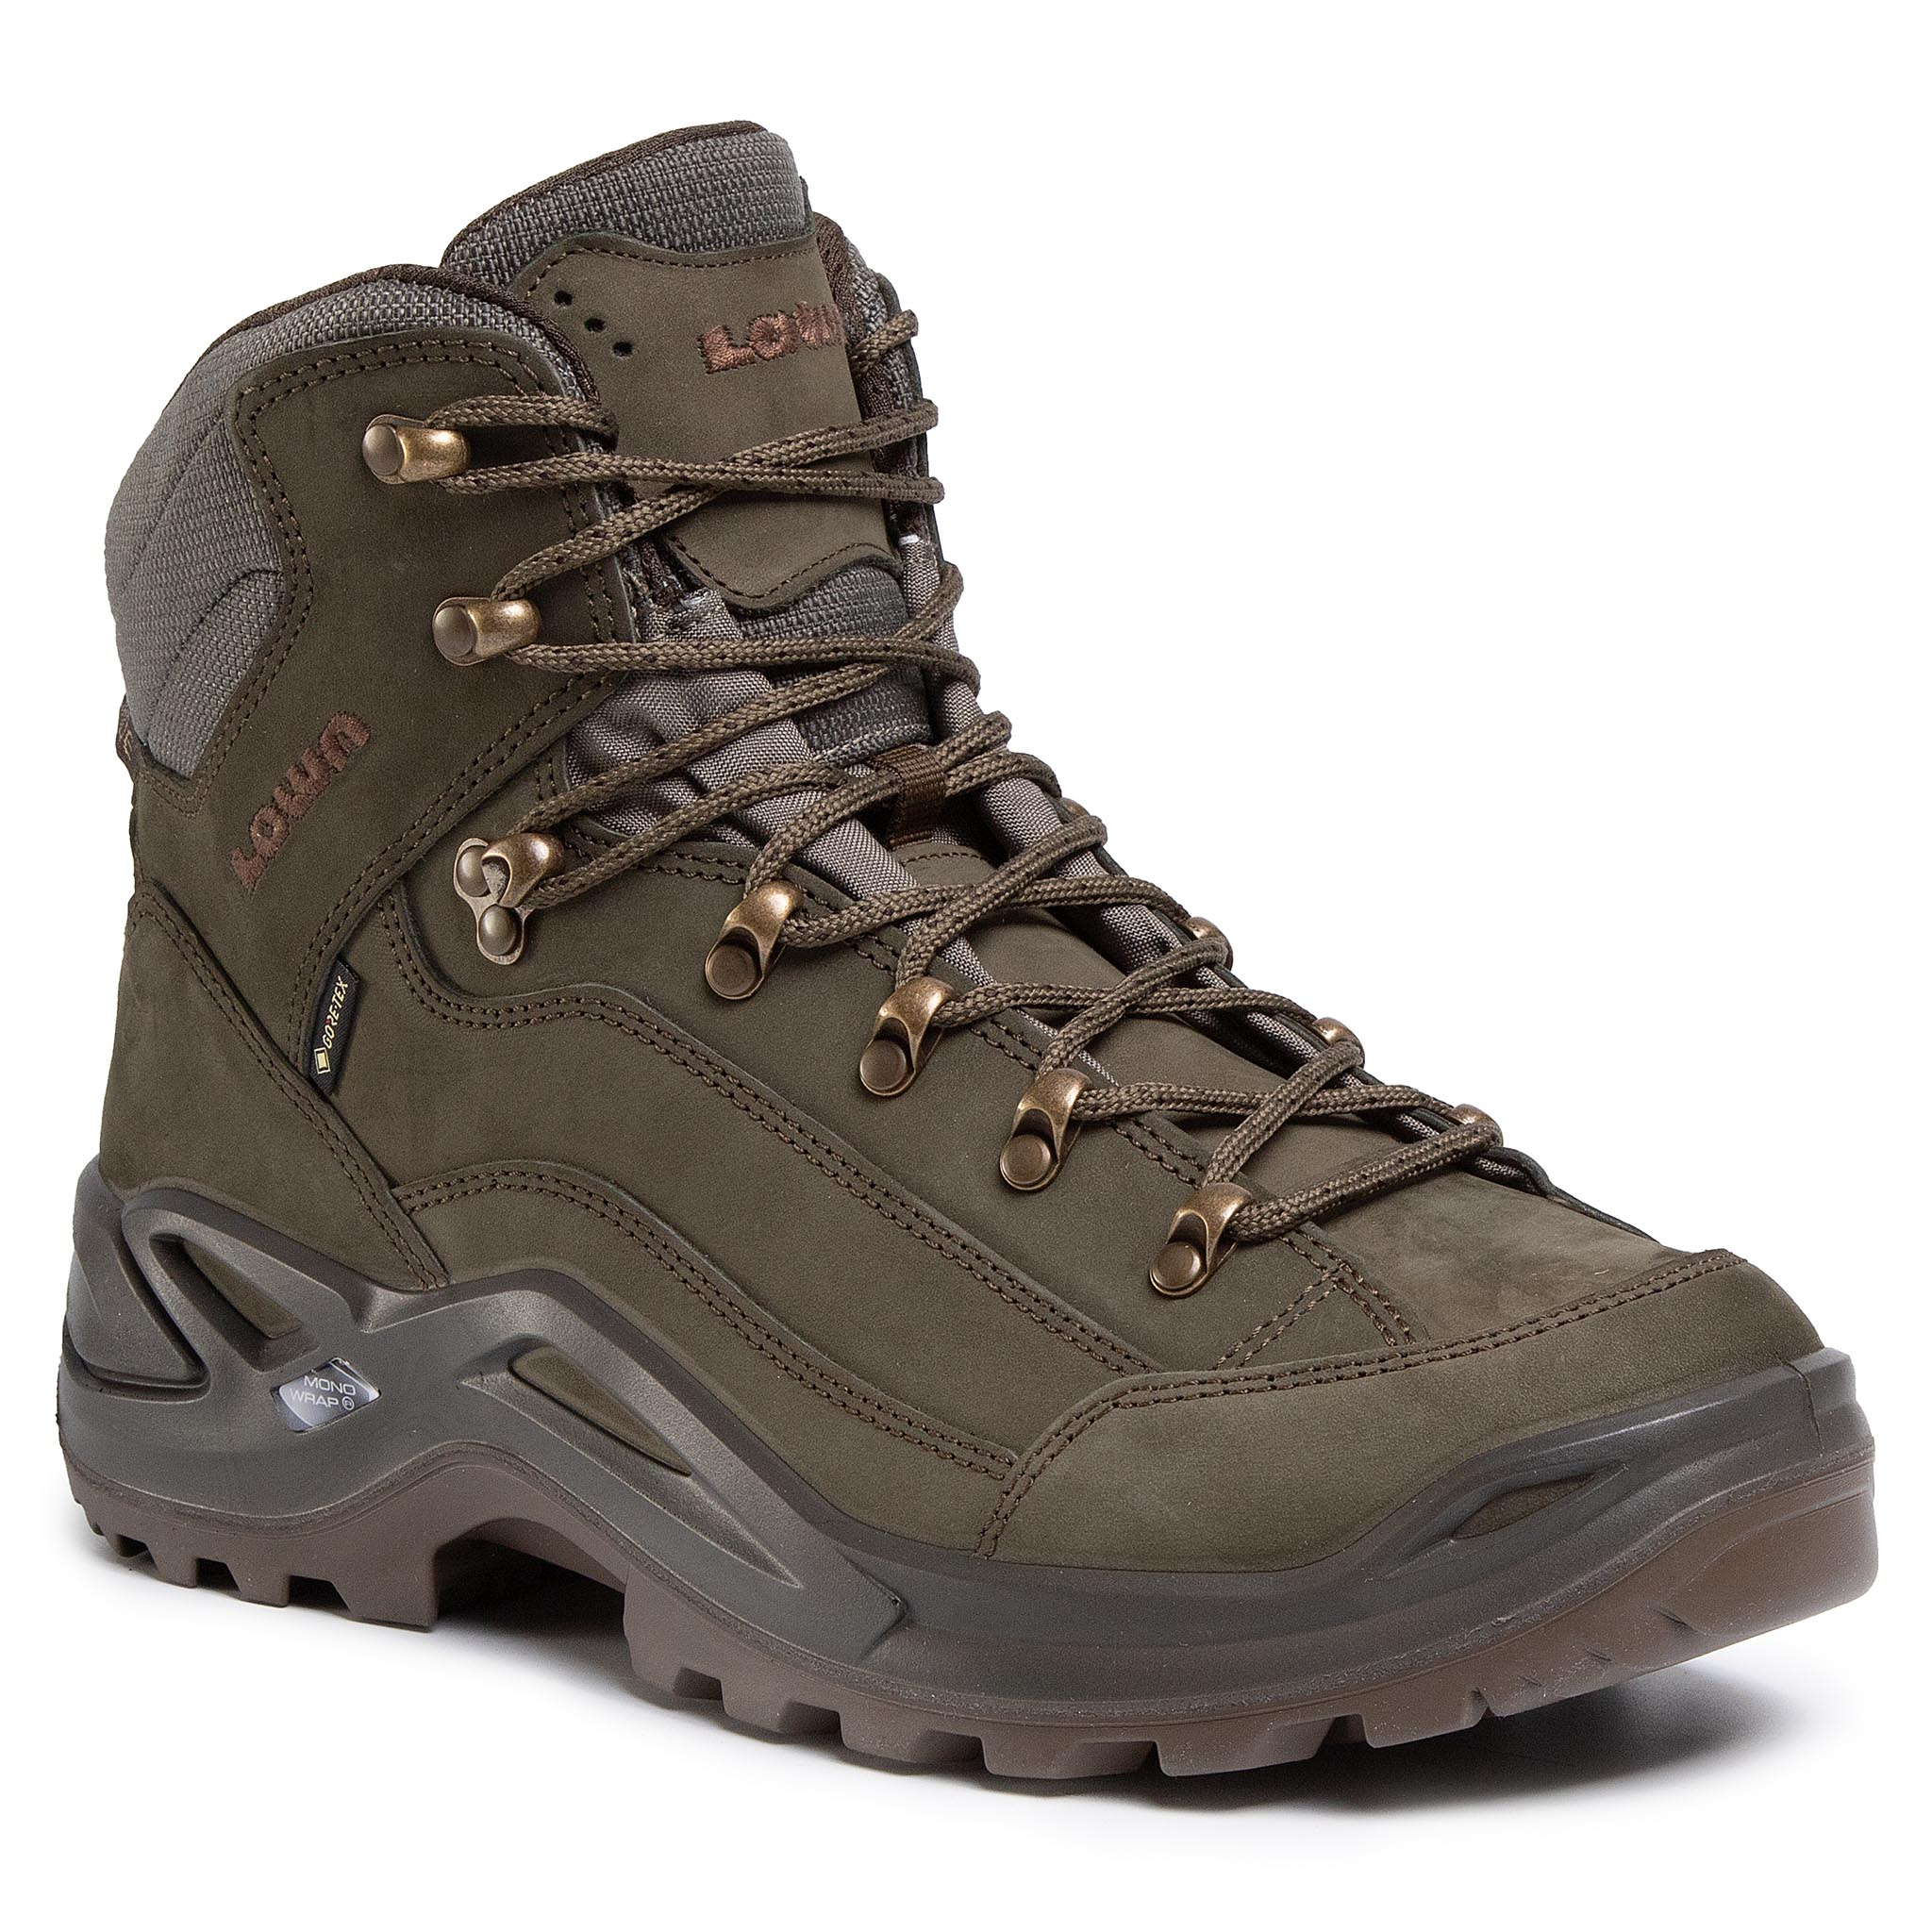 Trekkings Lowa - Renegade Gtx Mid Gore-Tex 310945 Basil 0724 imagine epantofi.ro 2021